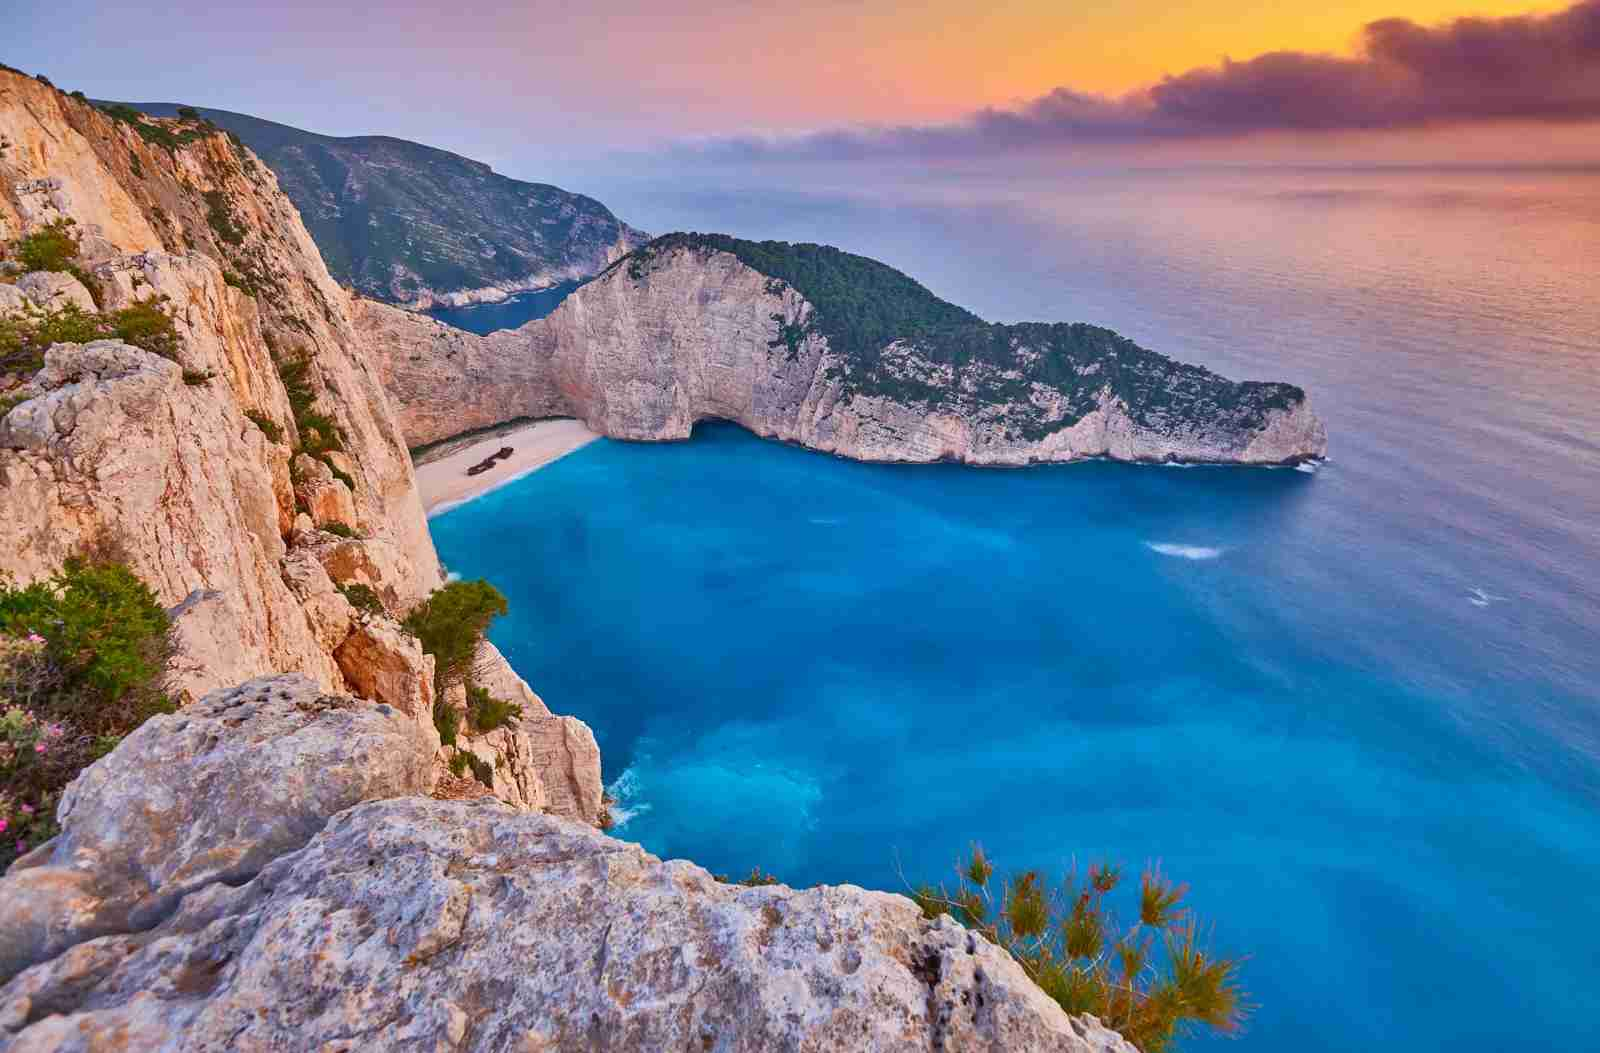 Navagio Beach on Zakynthos island, Greece. (Photo by Zick Svift / Shutterstock)